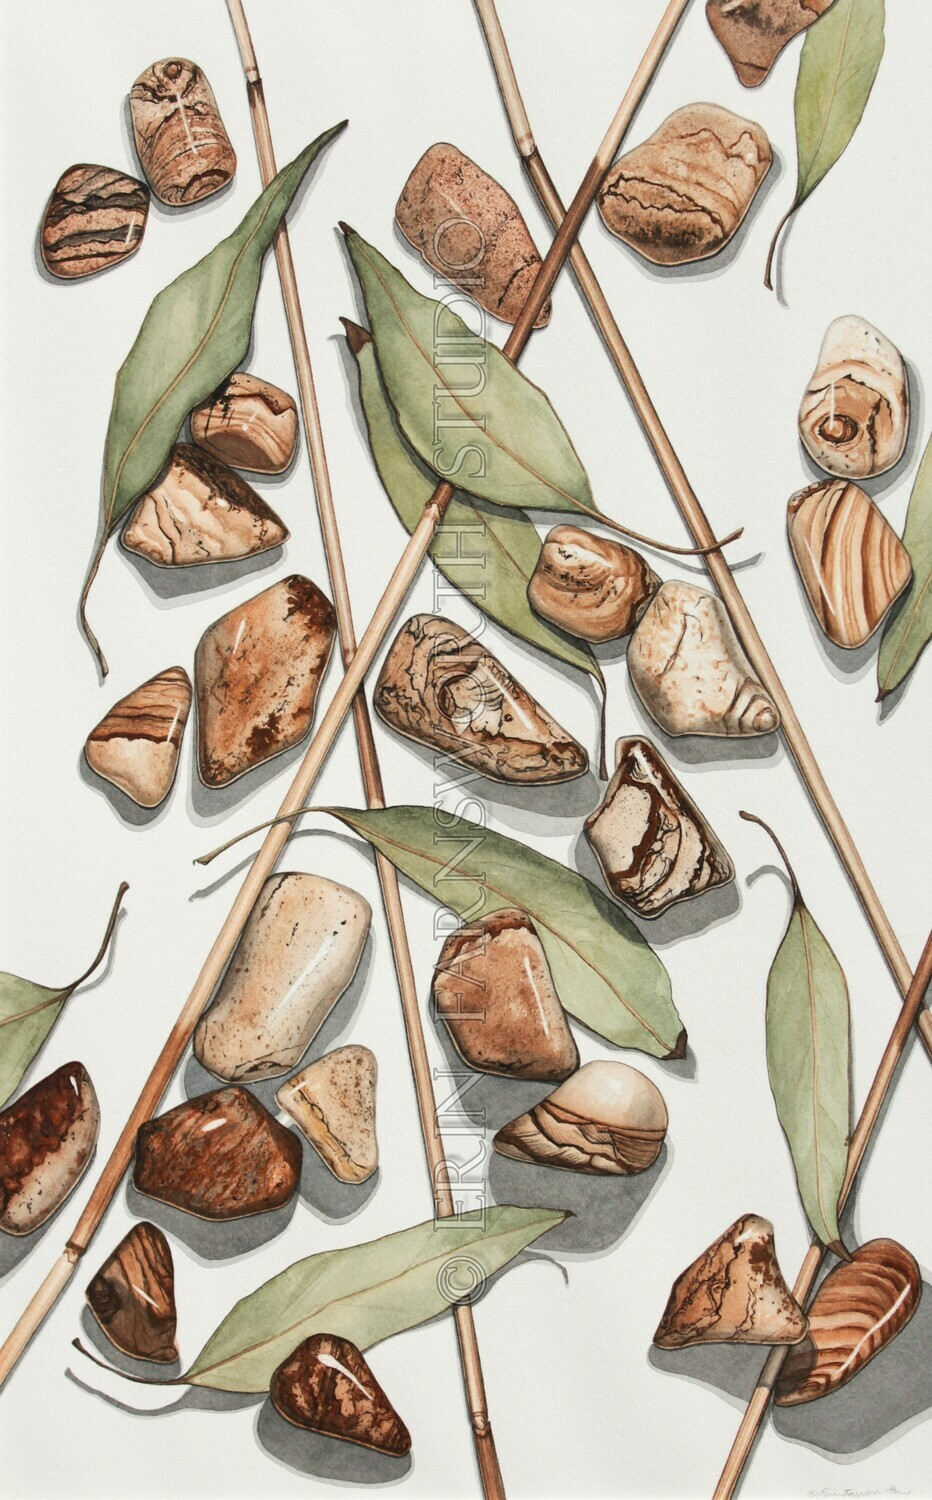 """Reeds, Leaves and Picture Jasper"" 11x17 limited edition print"